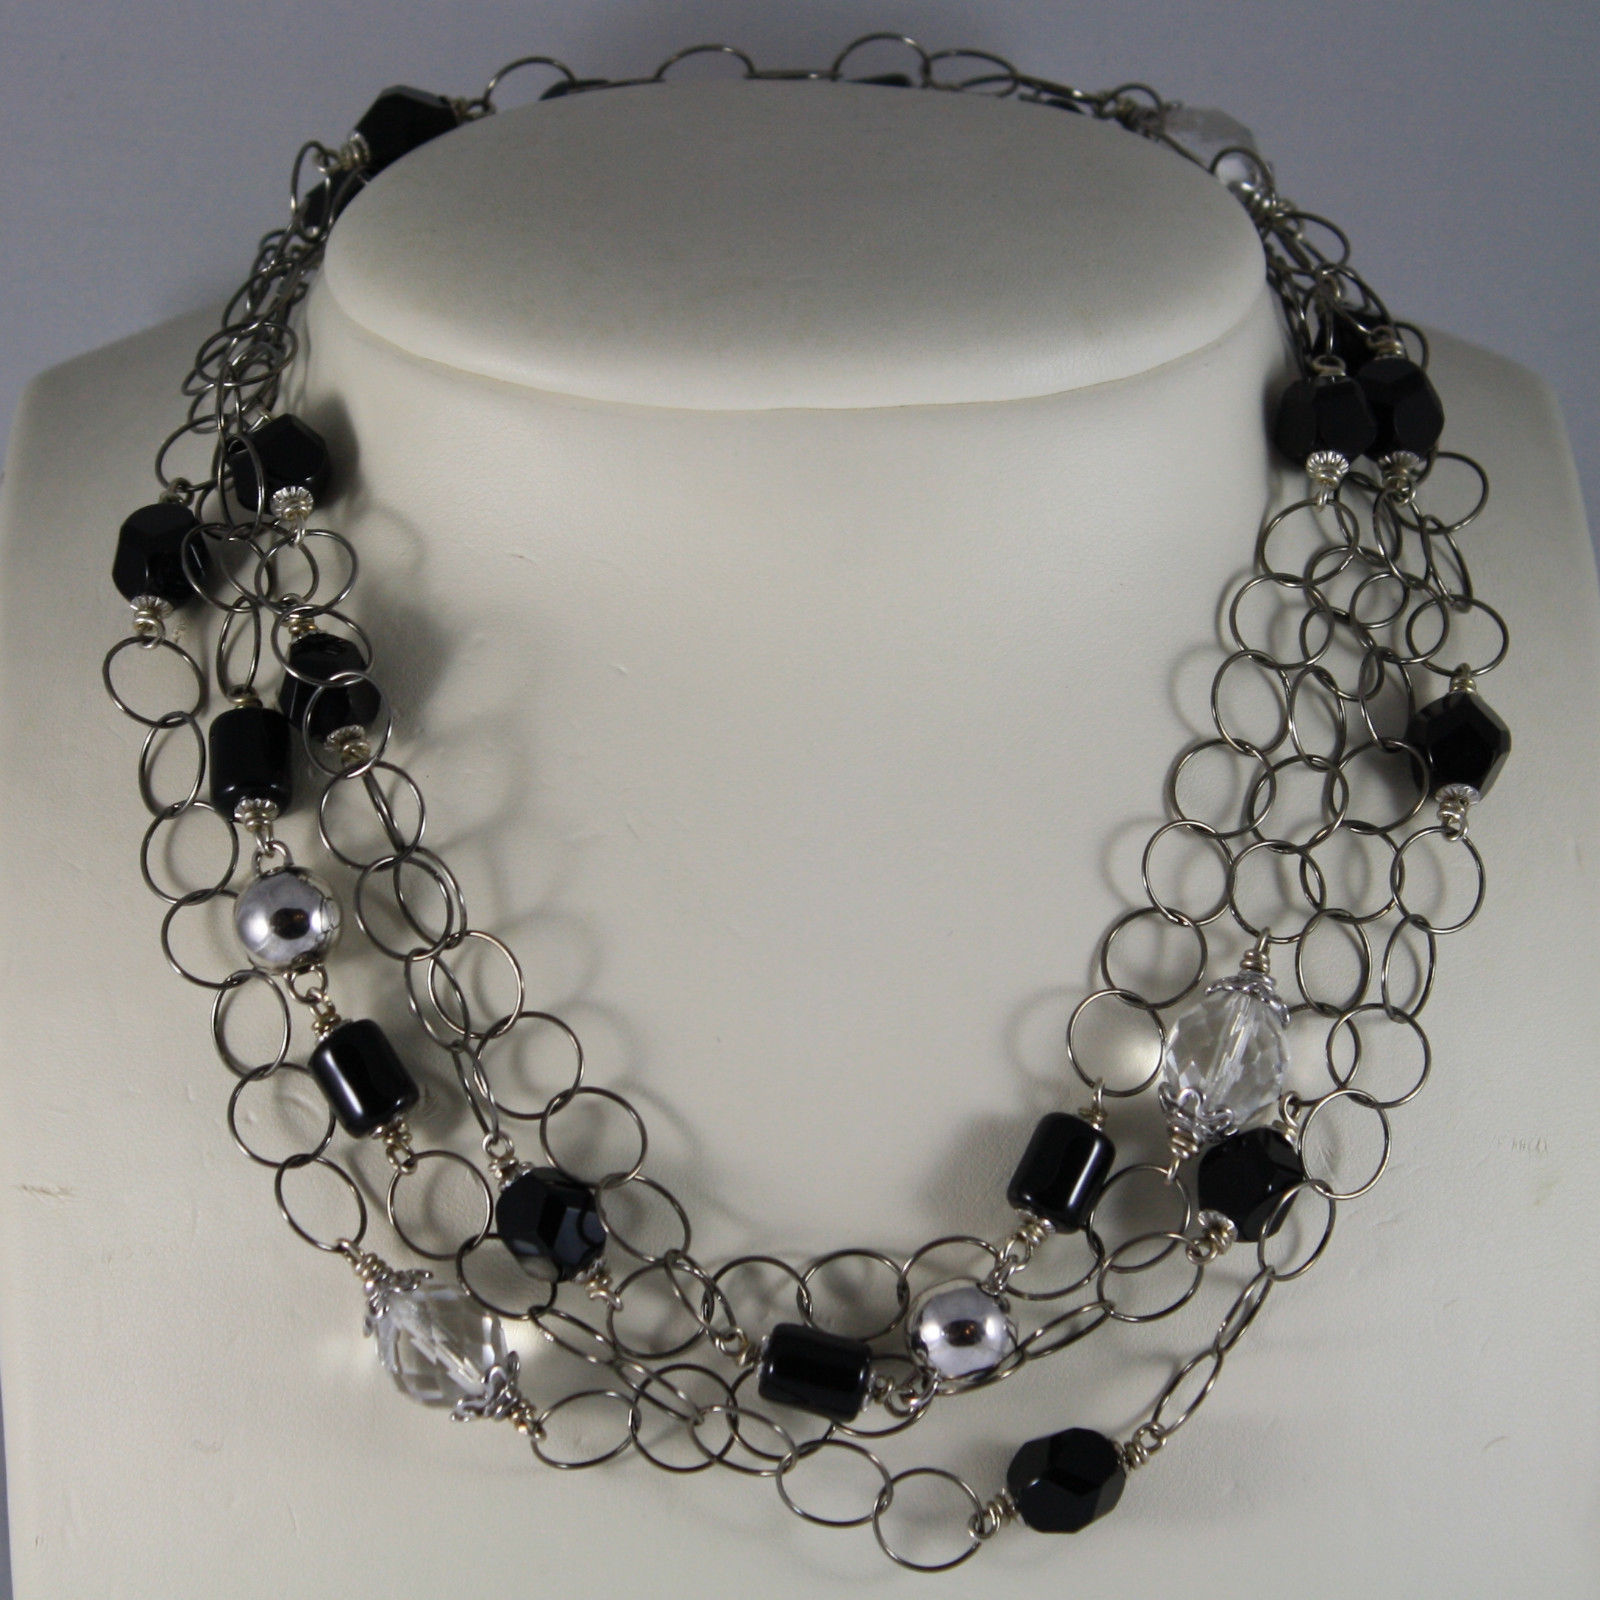 .925 RHODIUM SILVER DOUBLE NECKLACE WITH BLACK ONYX AND TRANSPARENT CRYSTALS